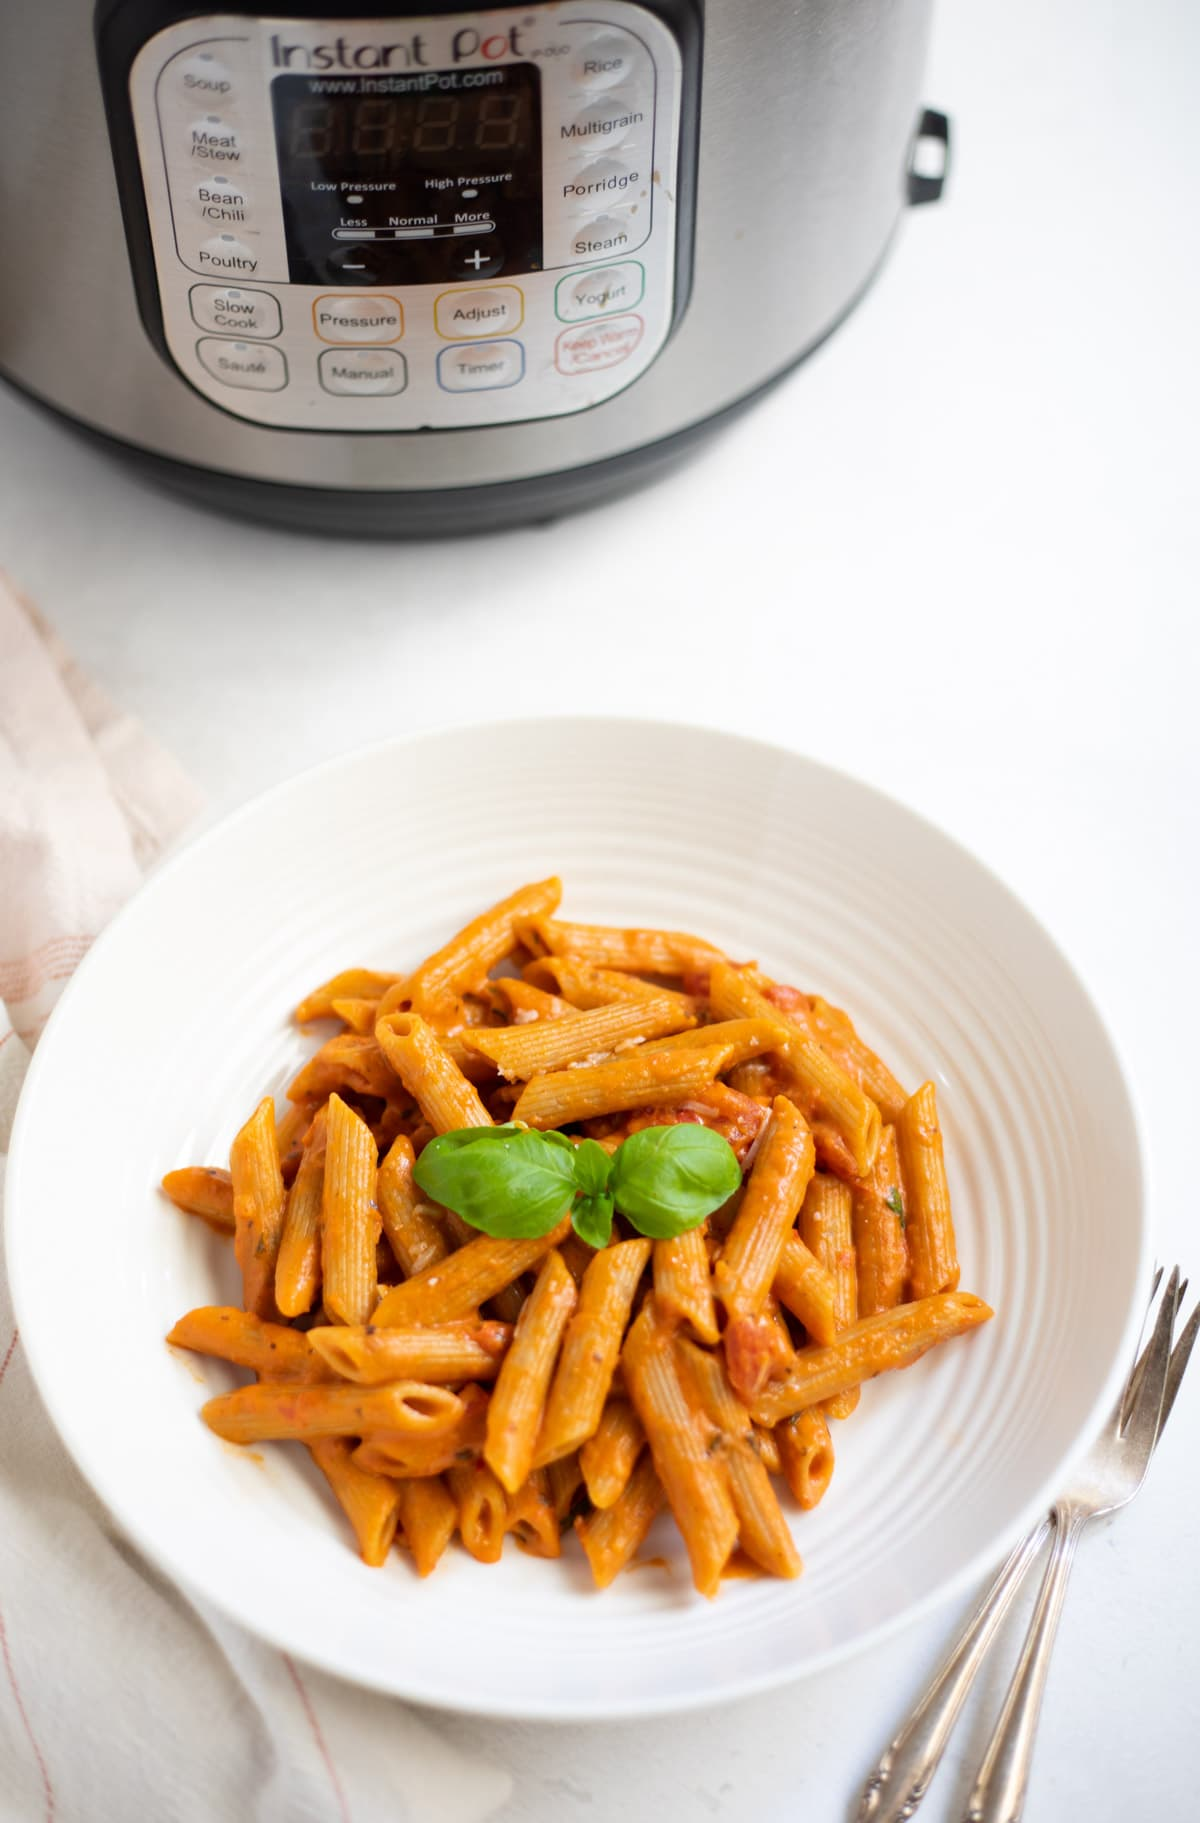 Penne Pasta in Tomato Cream Sauce in a white bowl placed in front of the Instant Pot